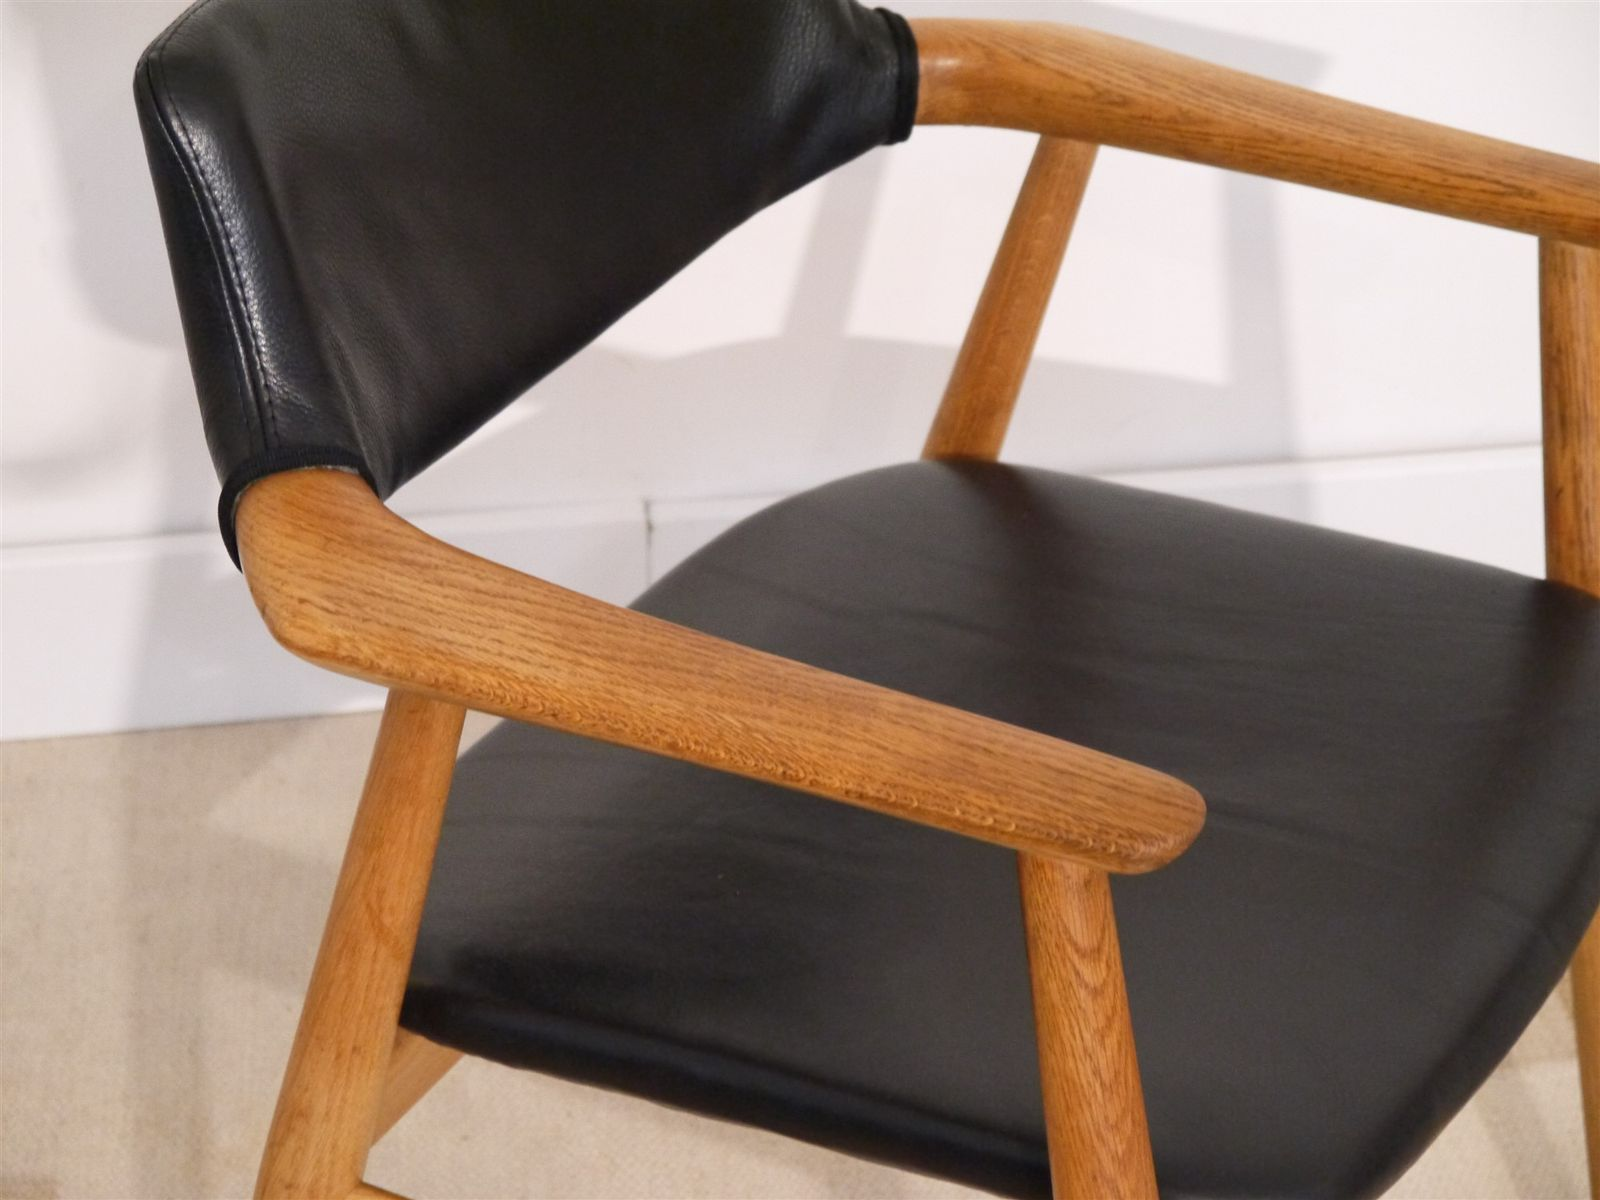 Vintage Danish fice Chair by Erik Kirkegaard for Glostrup for